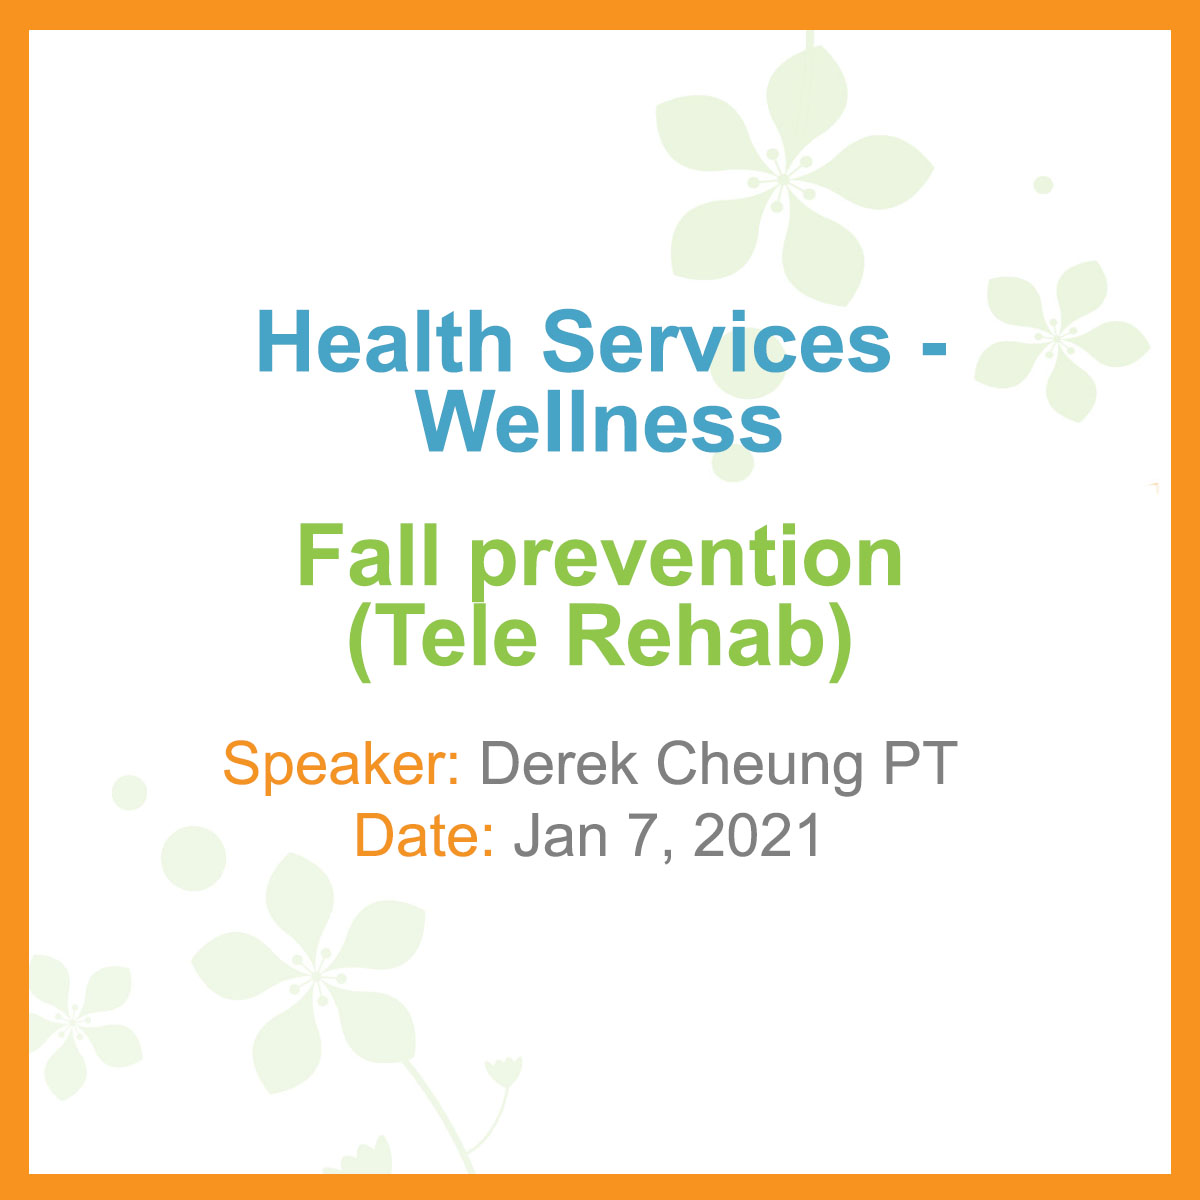 Health Services Fall Prevention